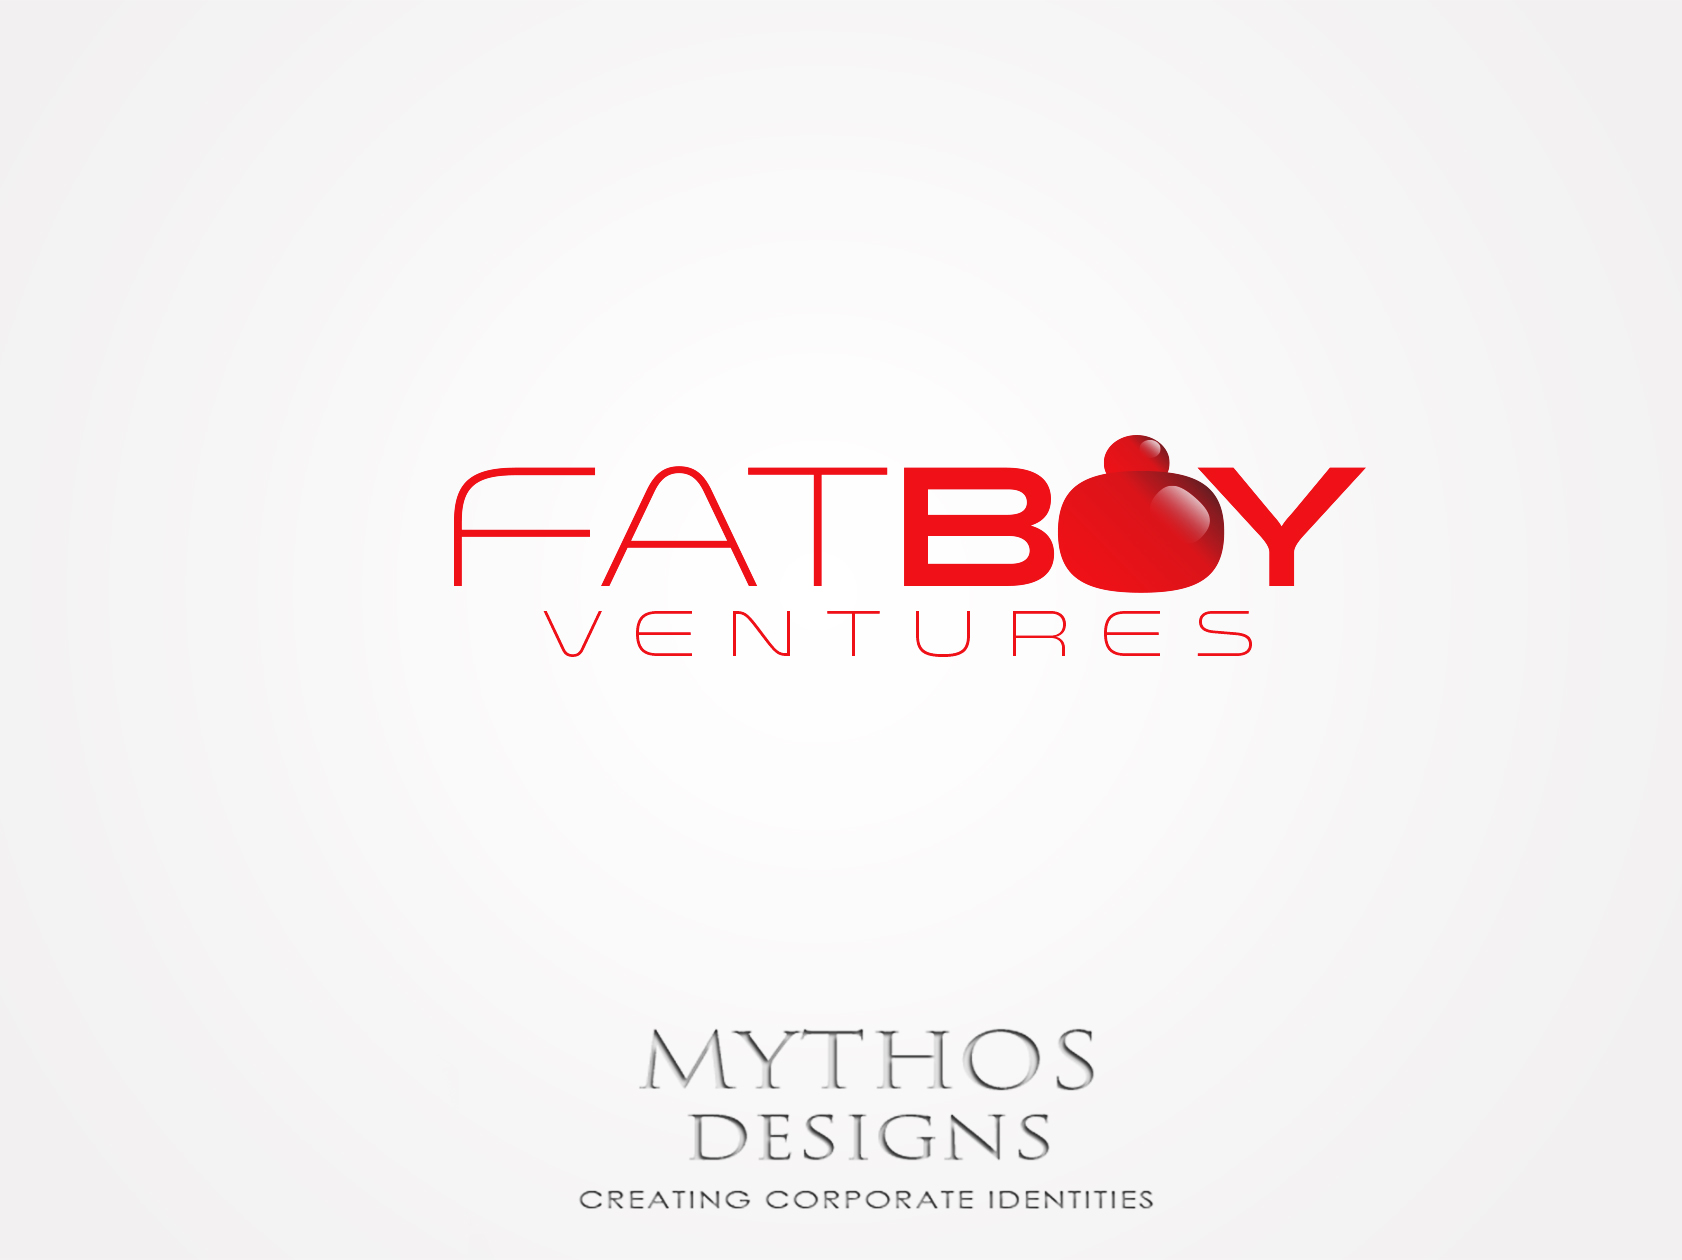 Logo Design by Mythos Designs - Entry No. 87 in the Logo Design Contest Fun Logo Design for Fat Boy Ventures.